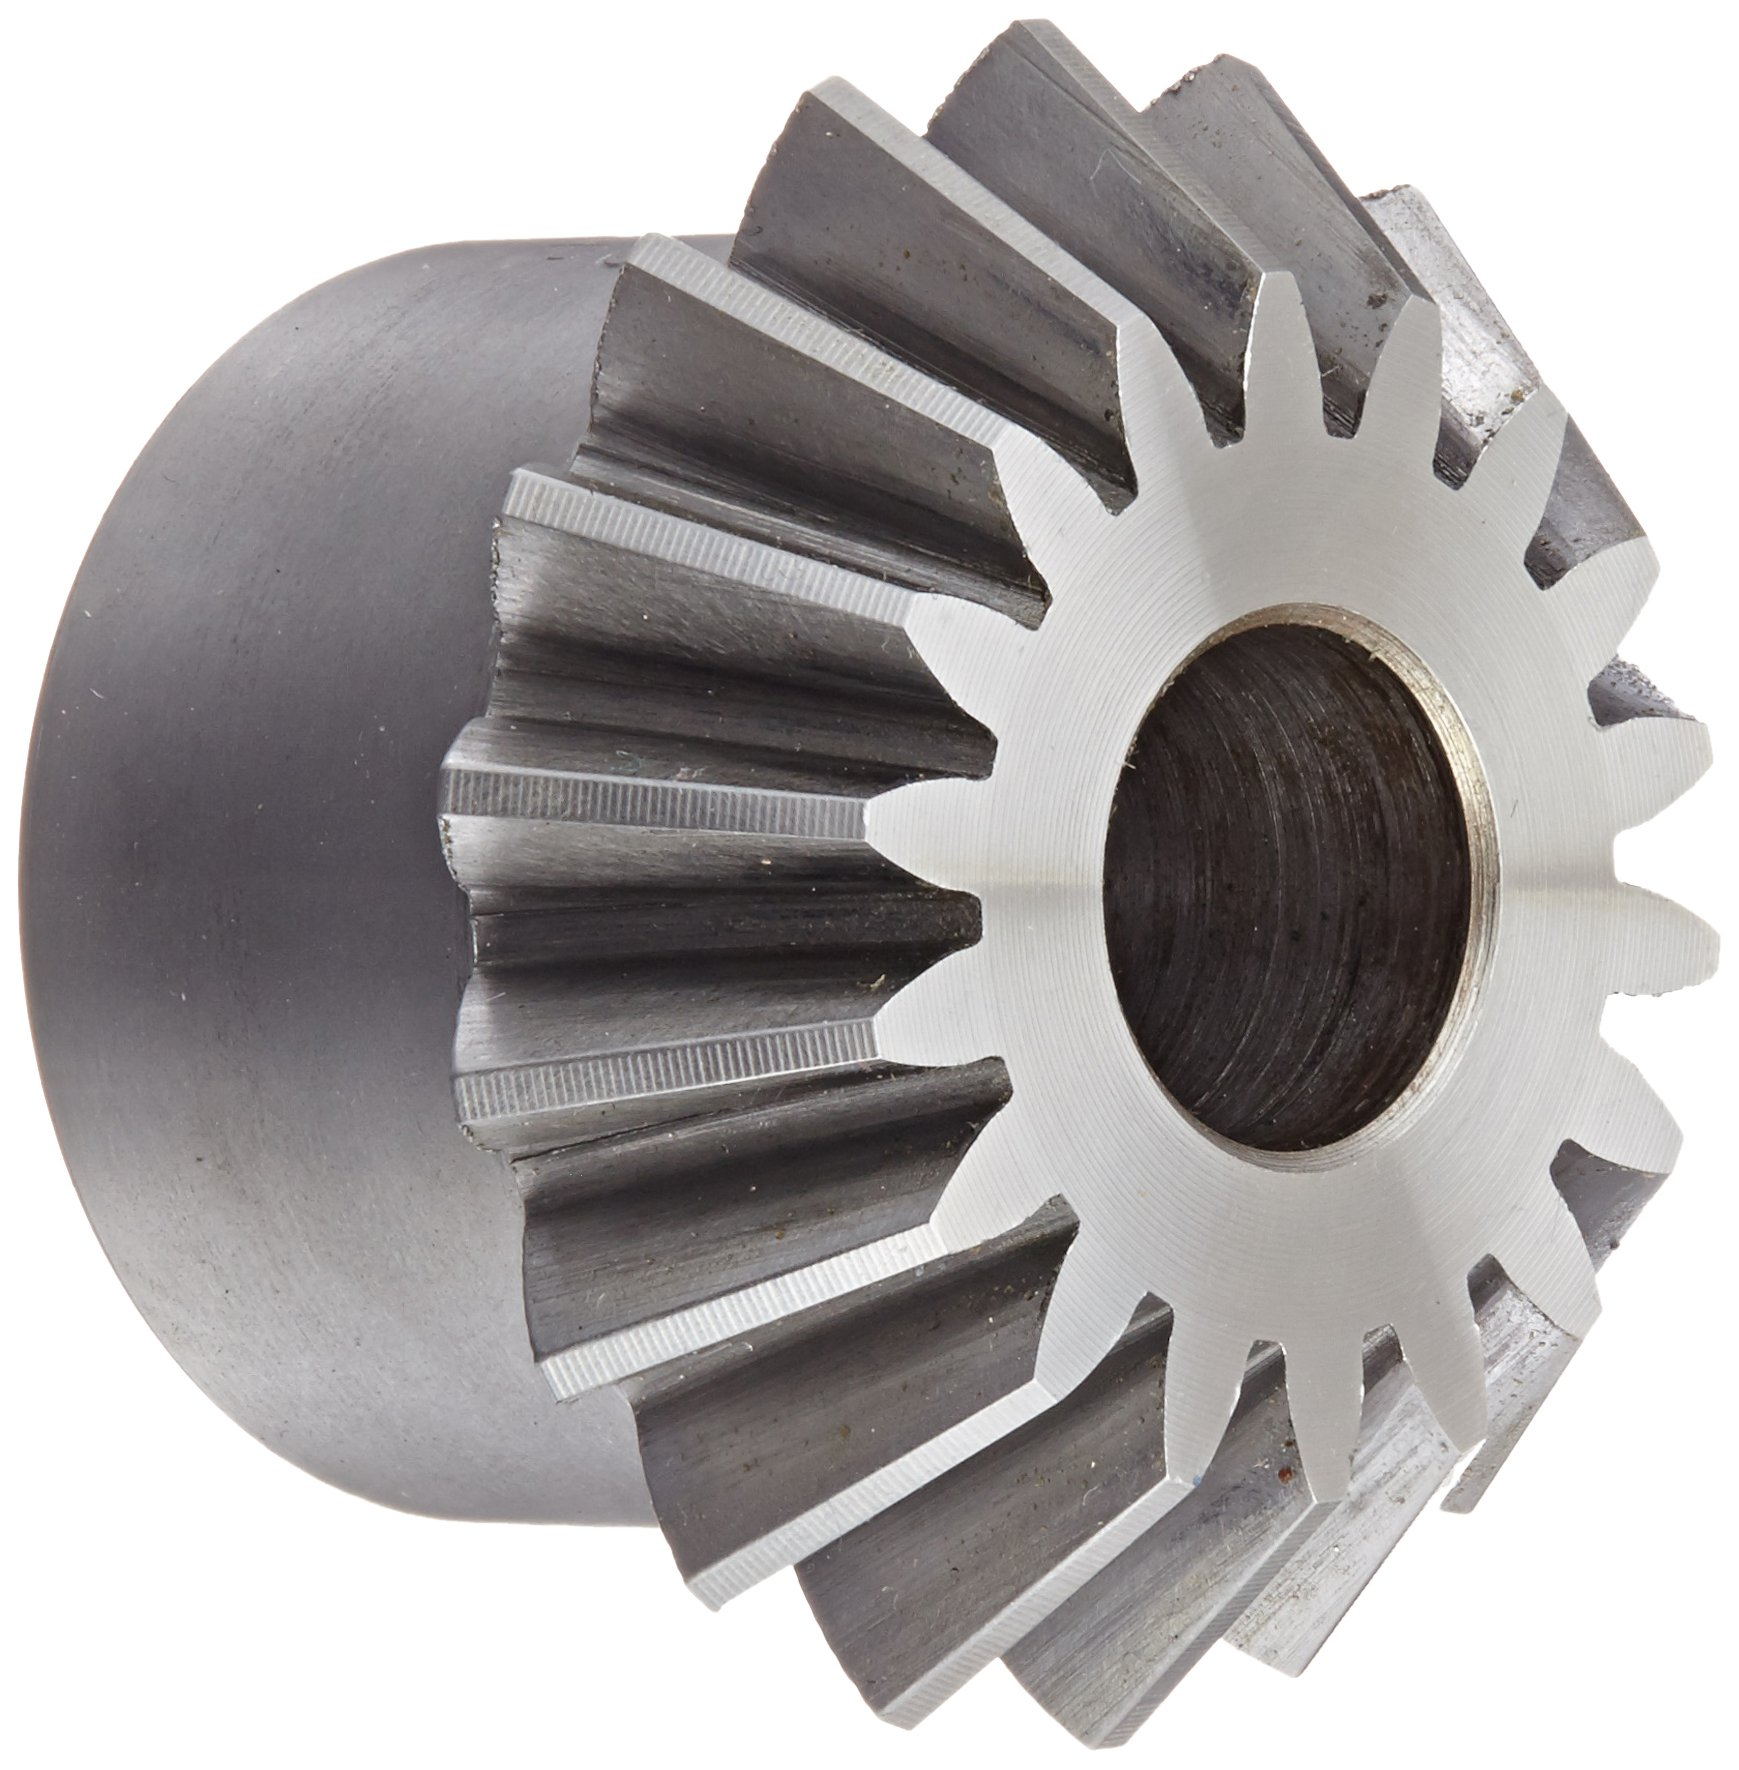 "Boston Gear L151Y-P Bevel Pinion Gear, 1.5:1 Ratio, 0.500"" Bore, 12 Pitch, 18 Teeth, 20 Degree Pressure Angle, Straight Bevel, Steel"